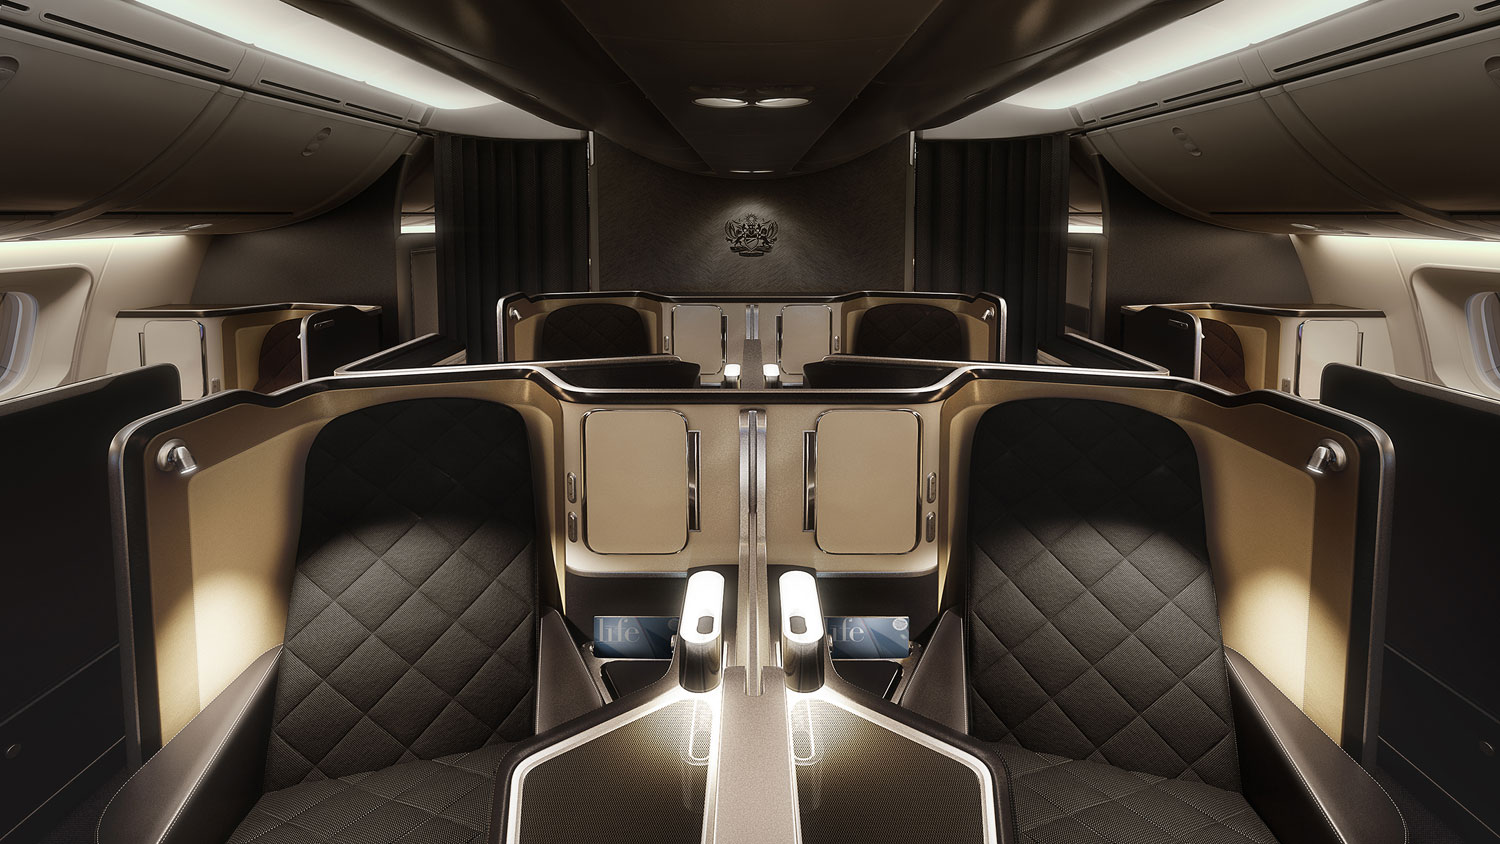 British Airways introduce the First Cabin on their new 787-9 Dreamliner